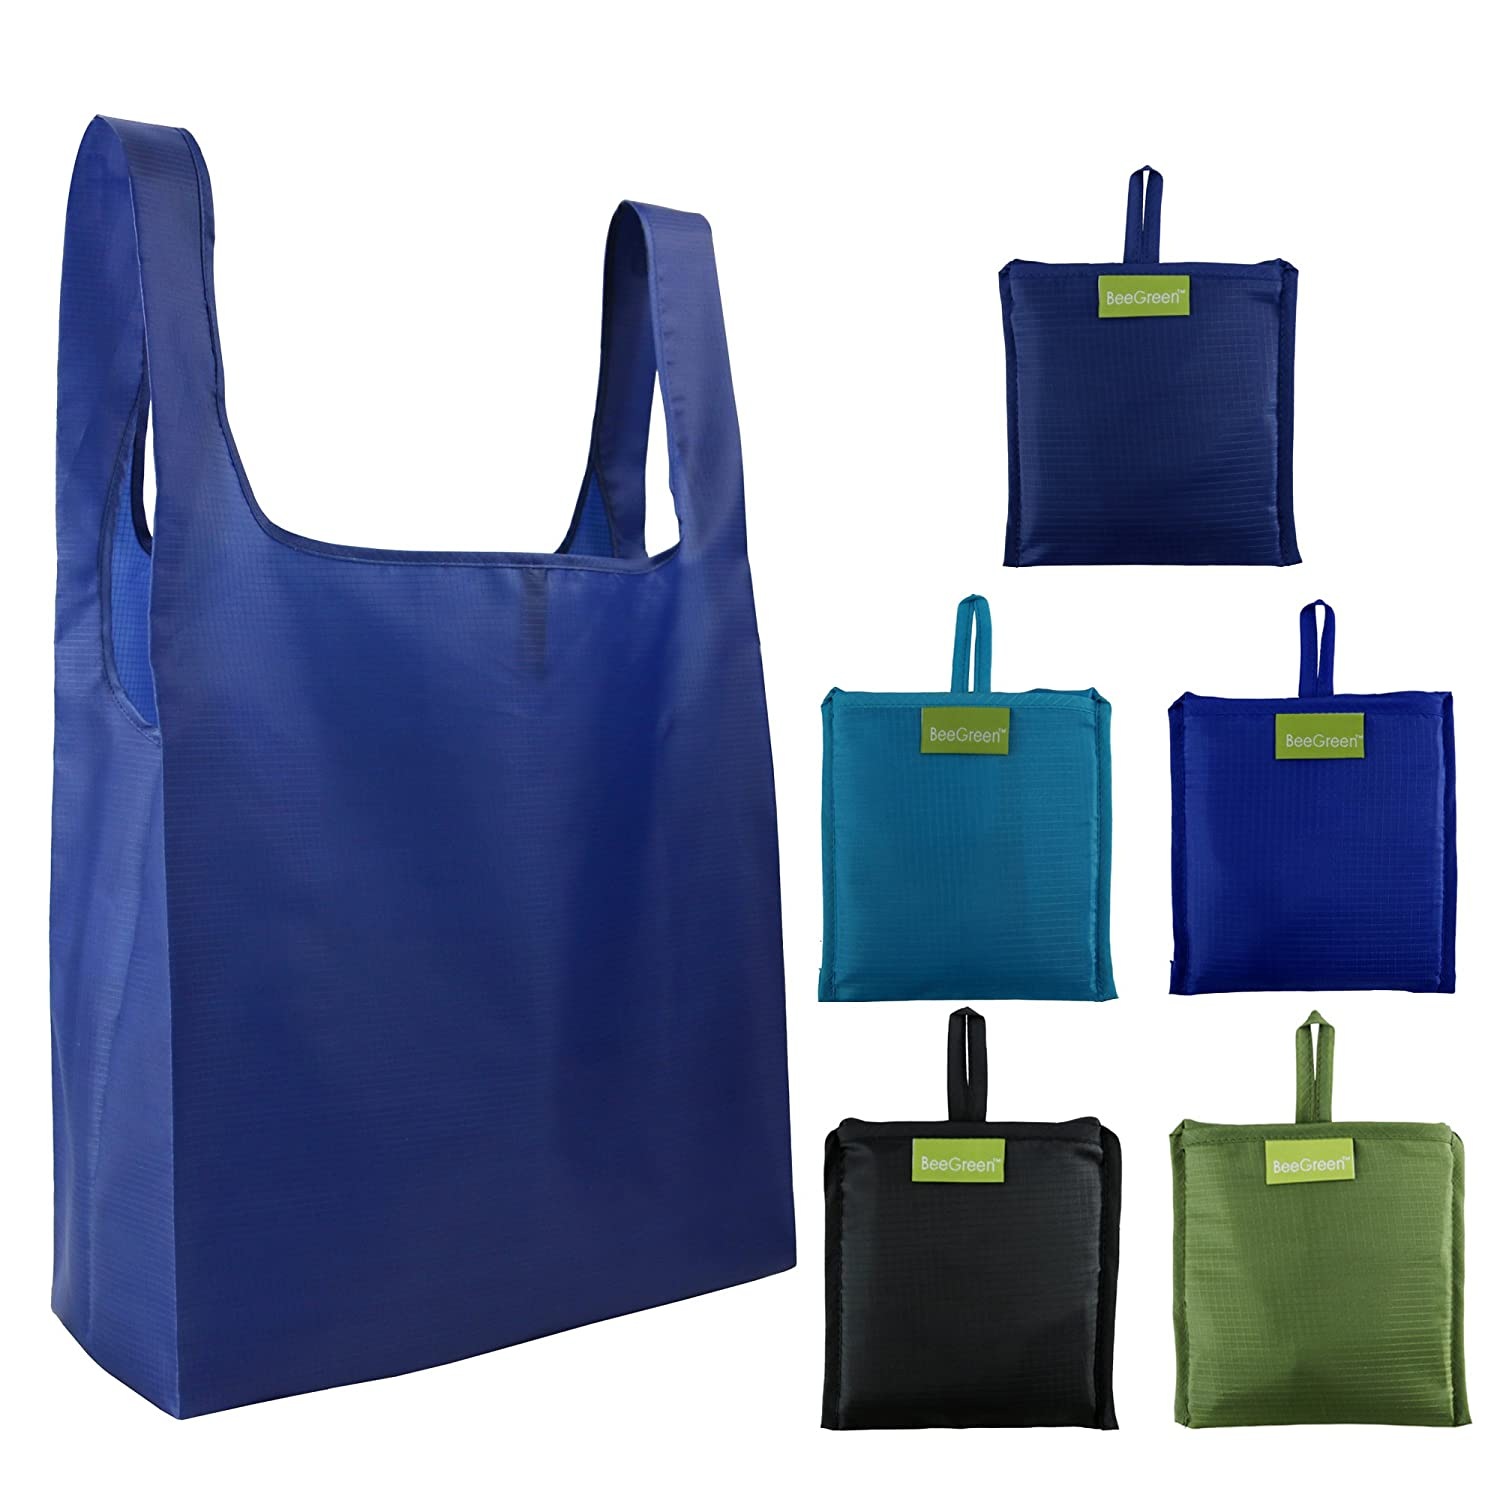 8fb4f80454 Amazon.com  Reusable Grocery Bags 5 Pack